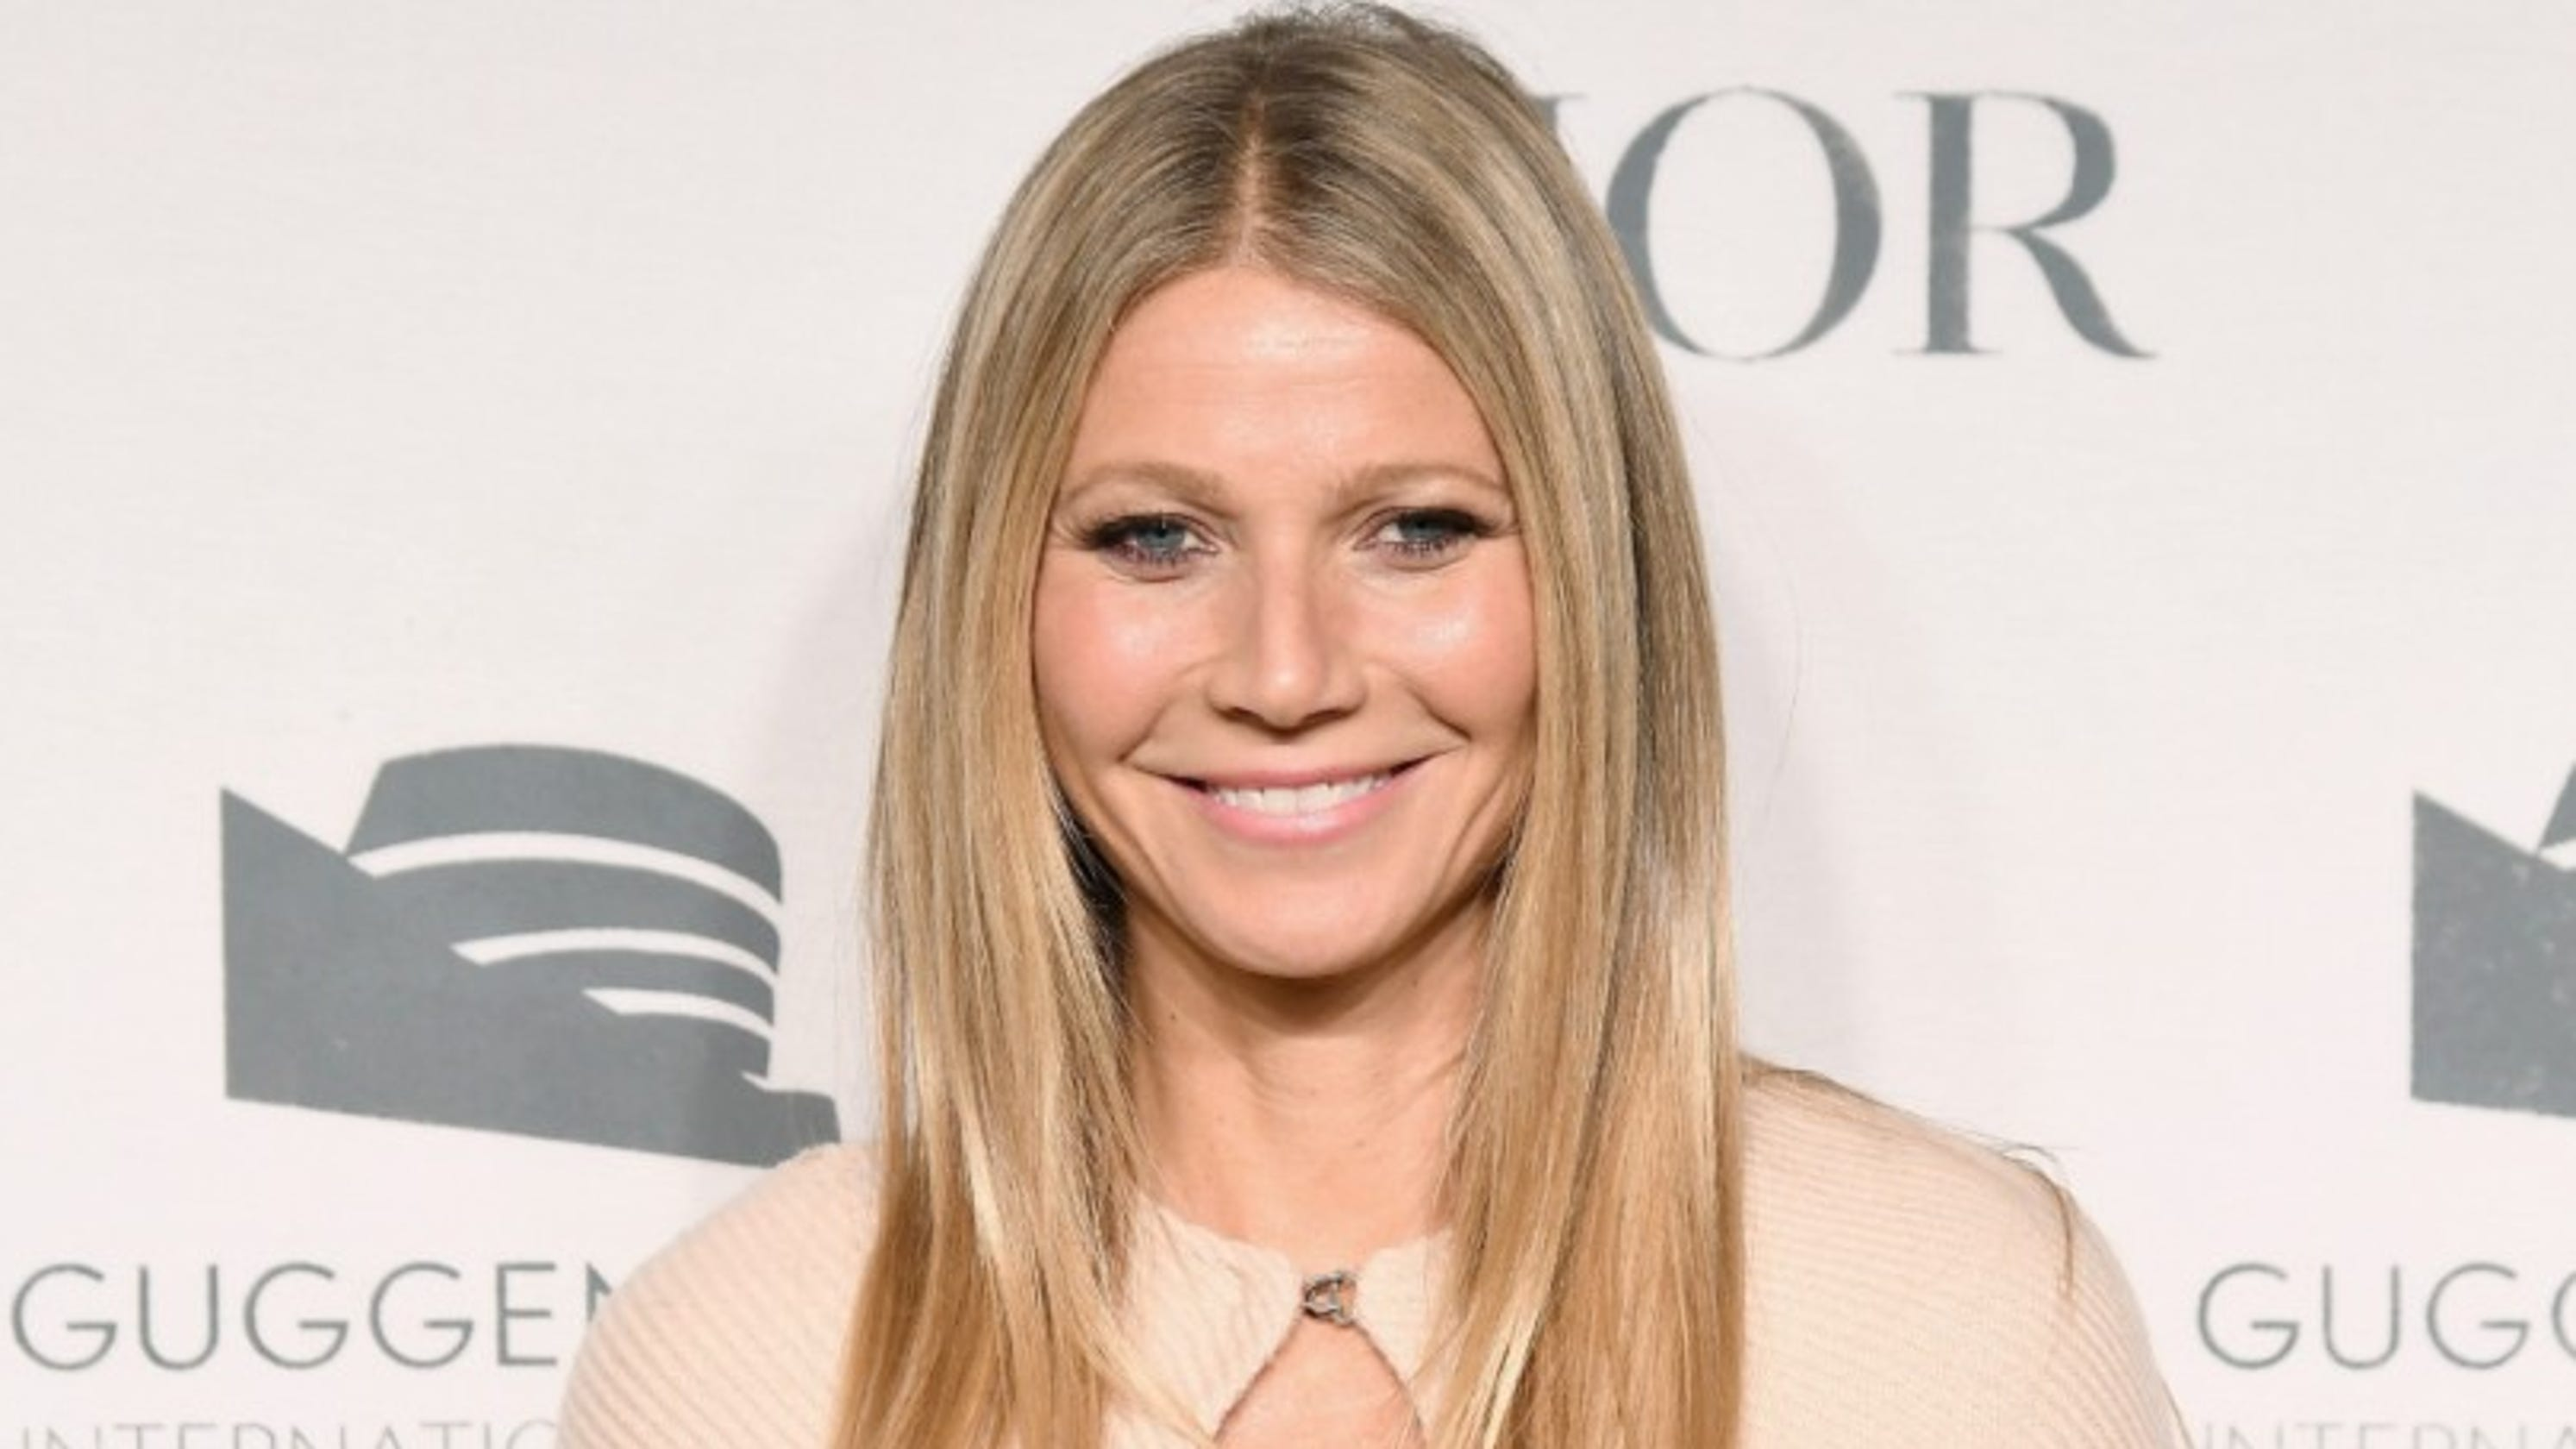 Gwyneth Paltrow celebrates daughter Apple's 15th birthday: 'I am the proudest mama ever'